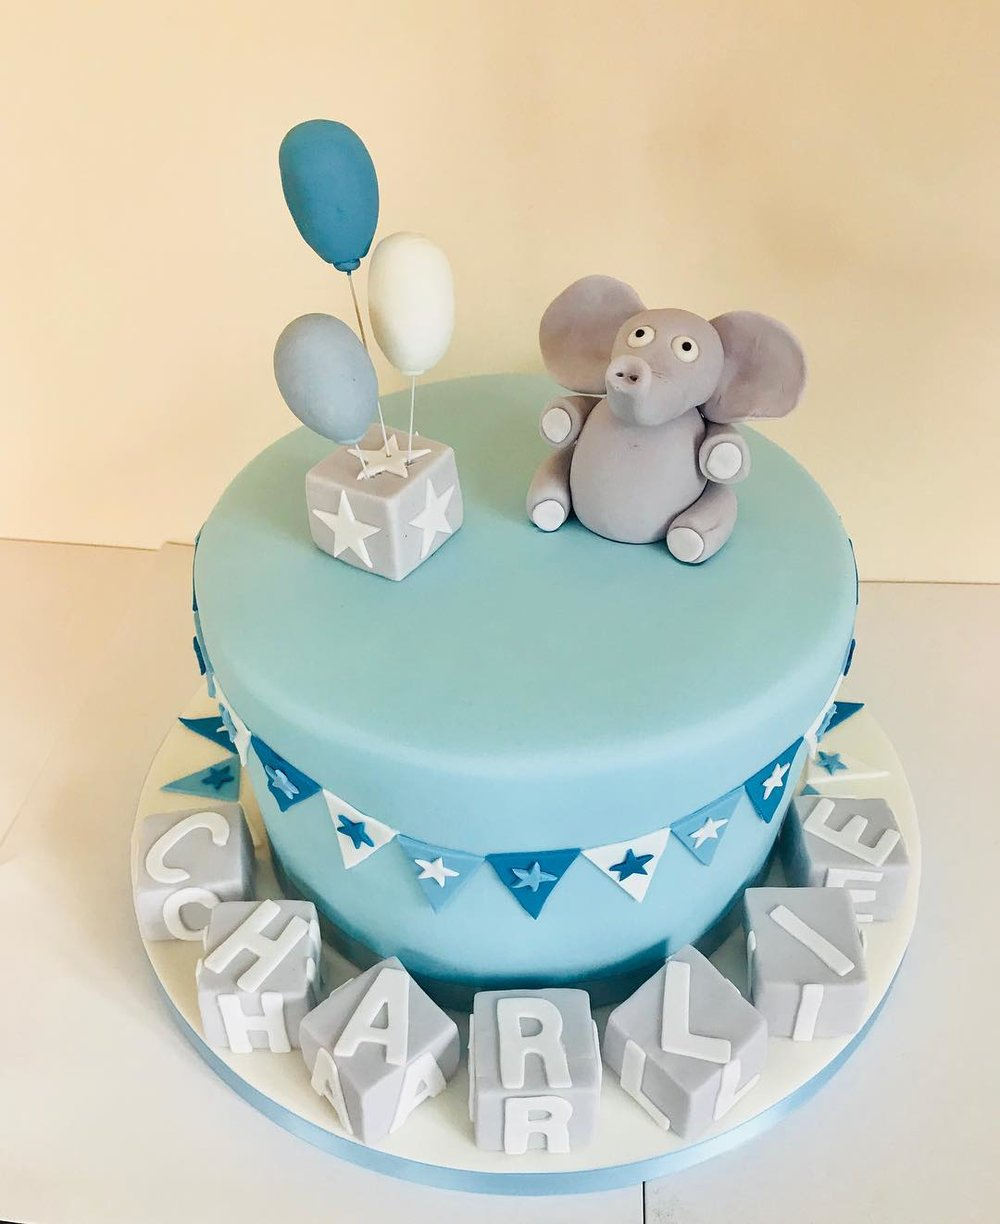 Charlie's Christening Cake, Sutton Coldfield